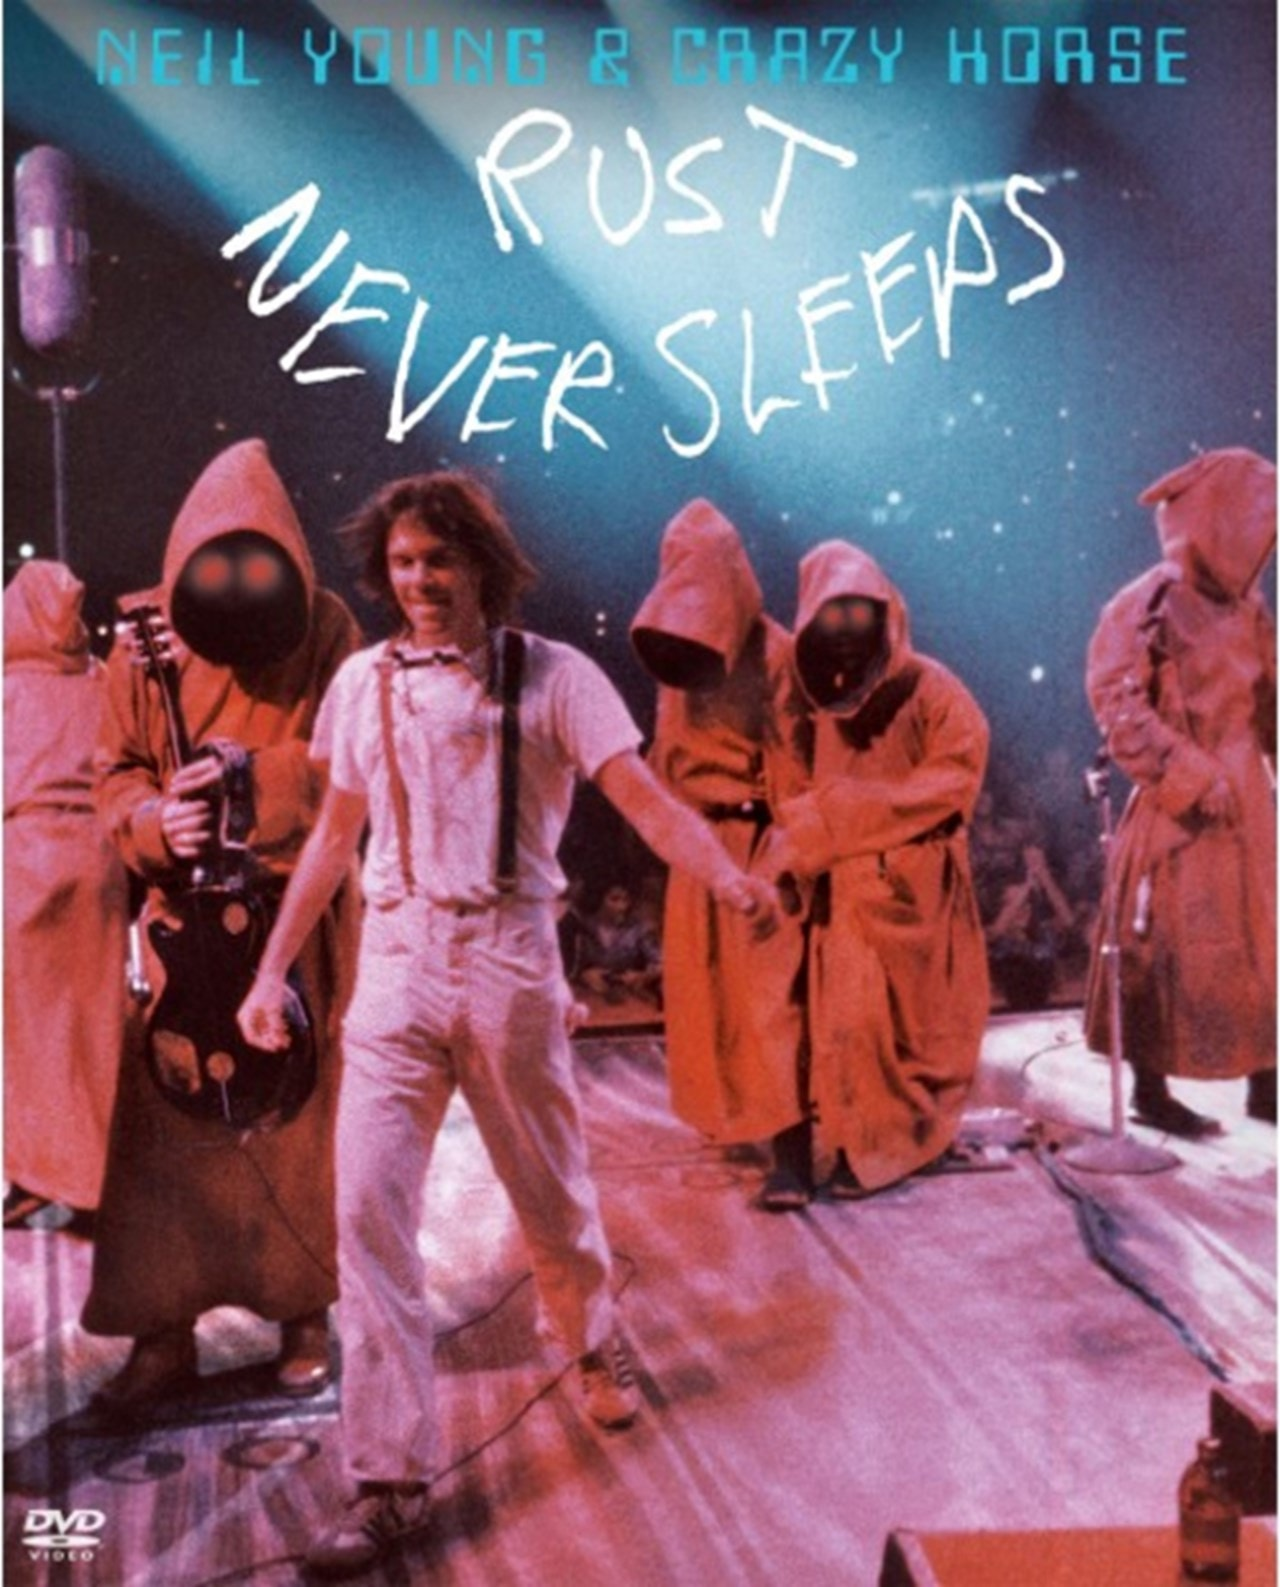 Neil Young and Crazy Horse: Rust Never Sleeps - 1